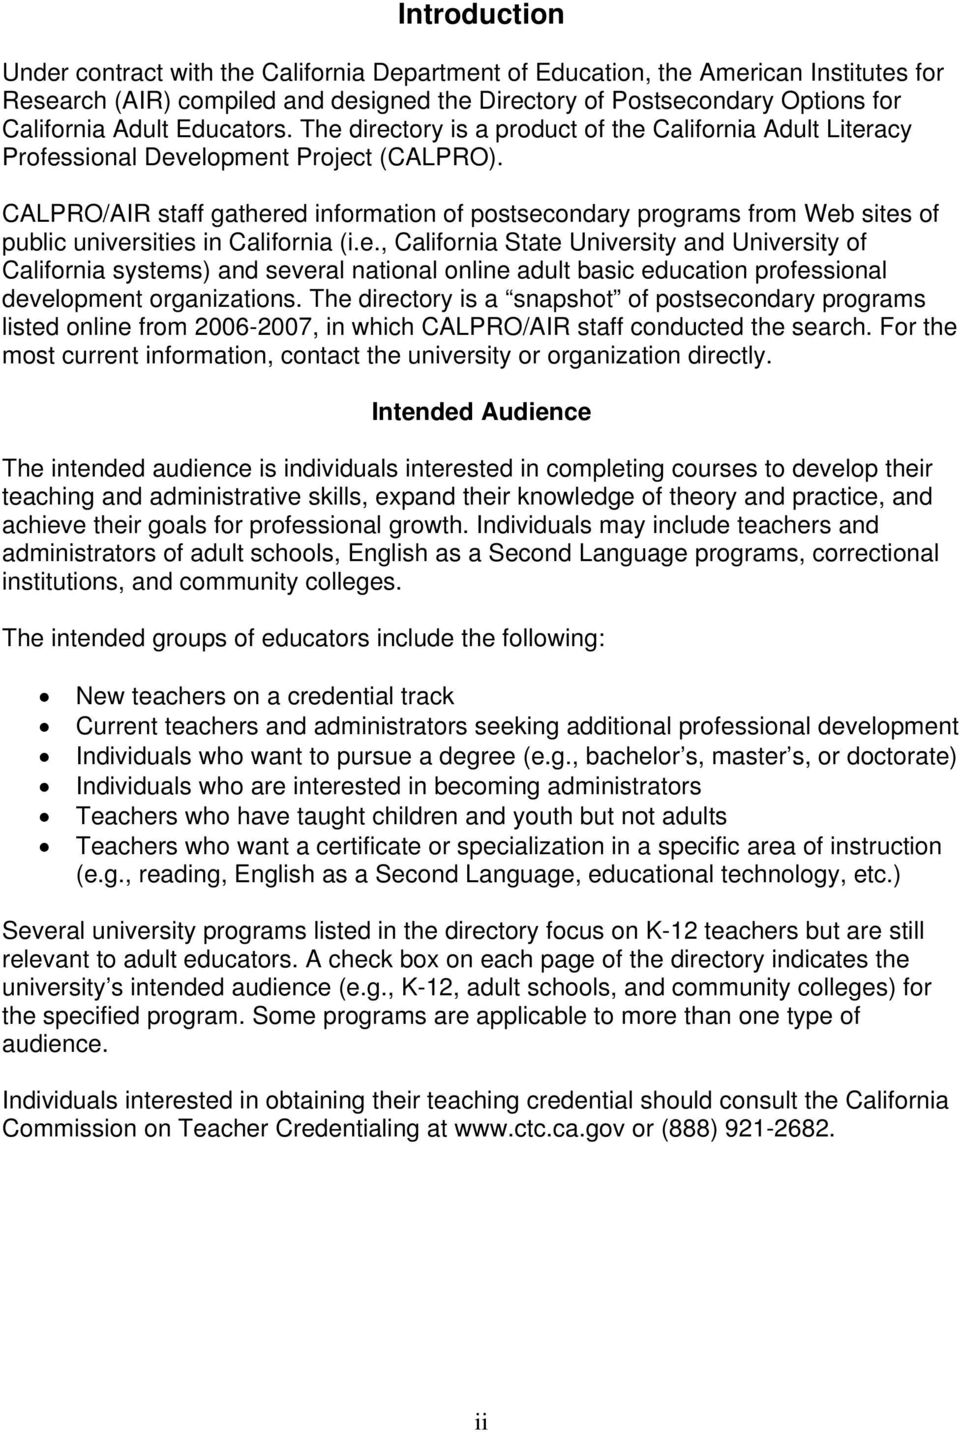 CALPRO/AIR staff gathered information of postsecondary programs from s of public universities in California (i.e., California State University and University of California systems) and several national online adult basic education professional development organizations.